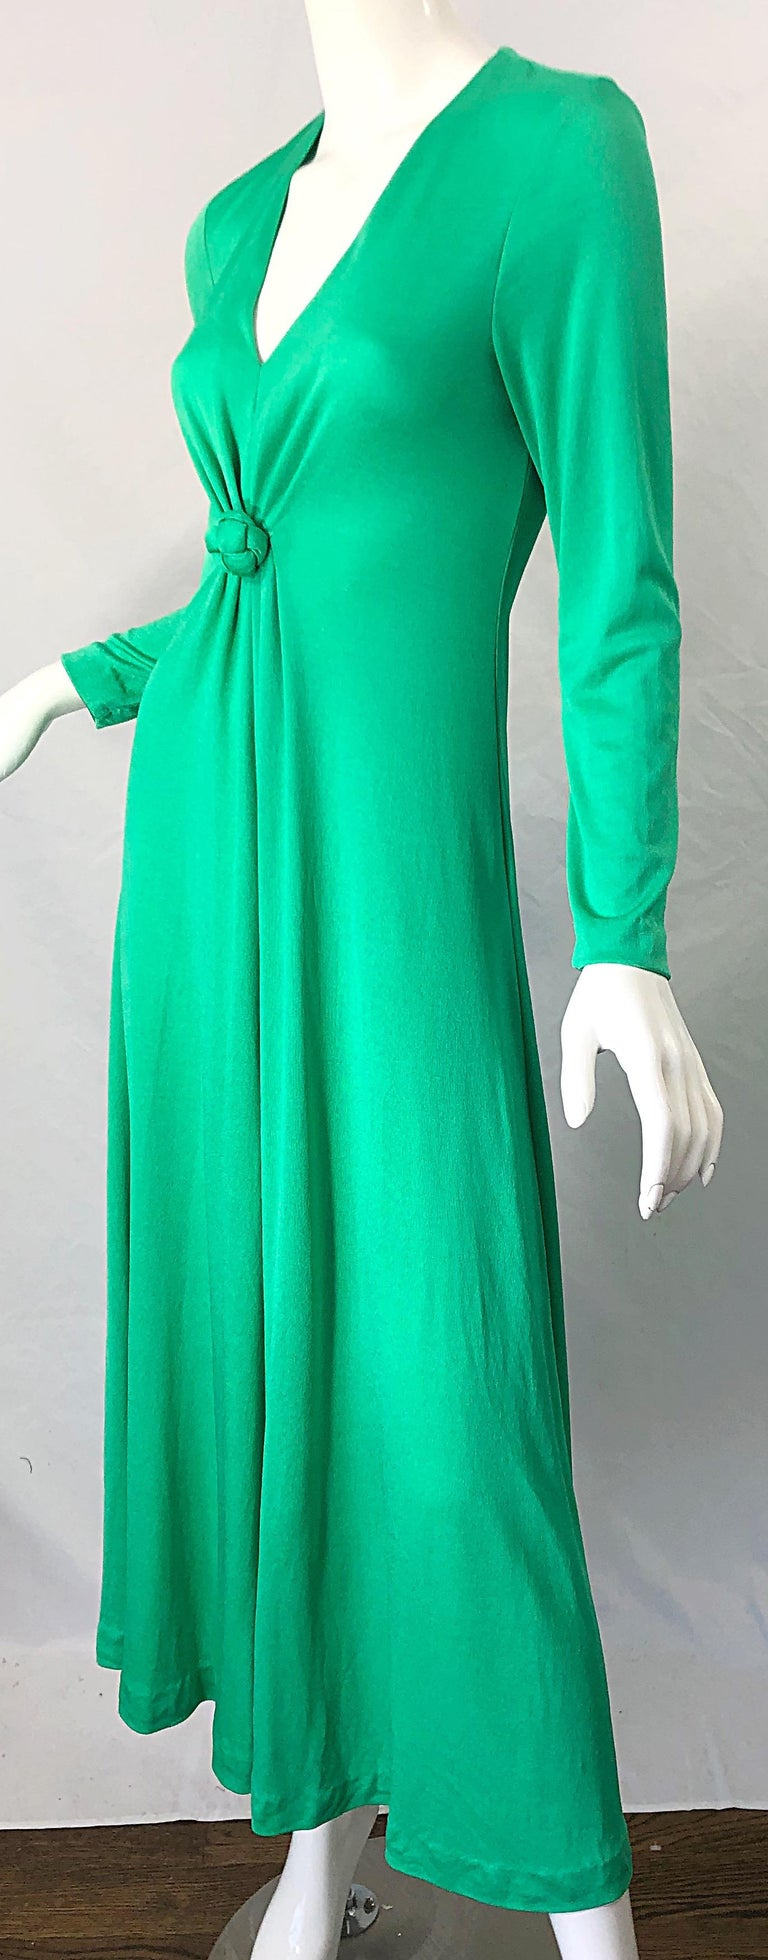 1970s Fredrick's of Hollywood Kelly Green Vintage Jersey 70s Maxi Dress For Sale 2